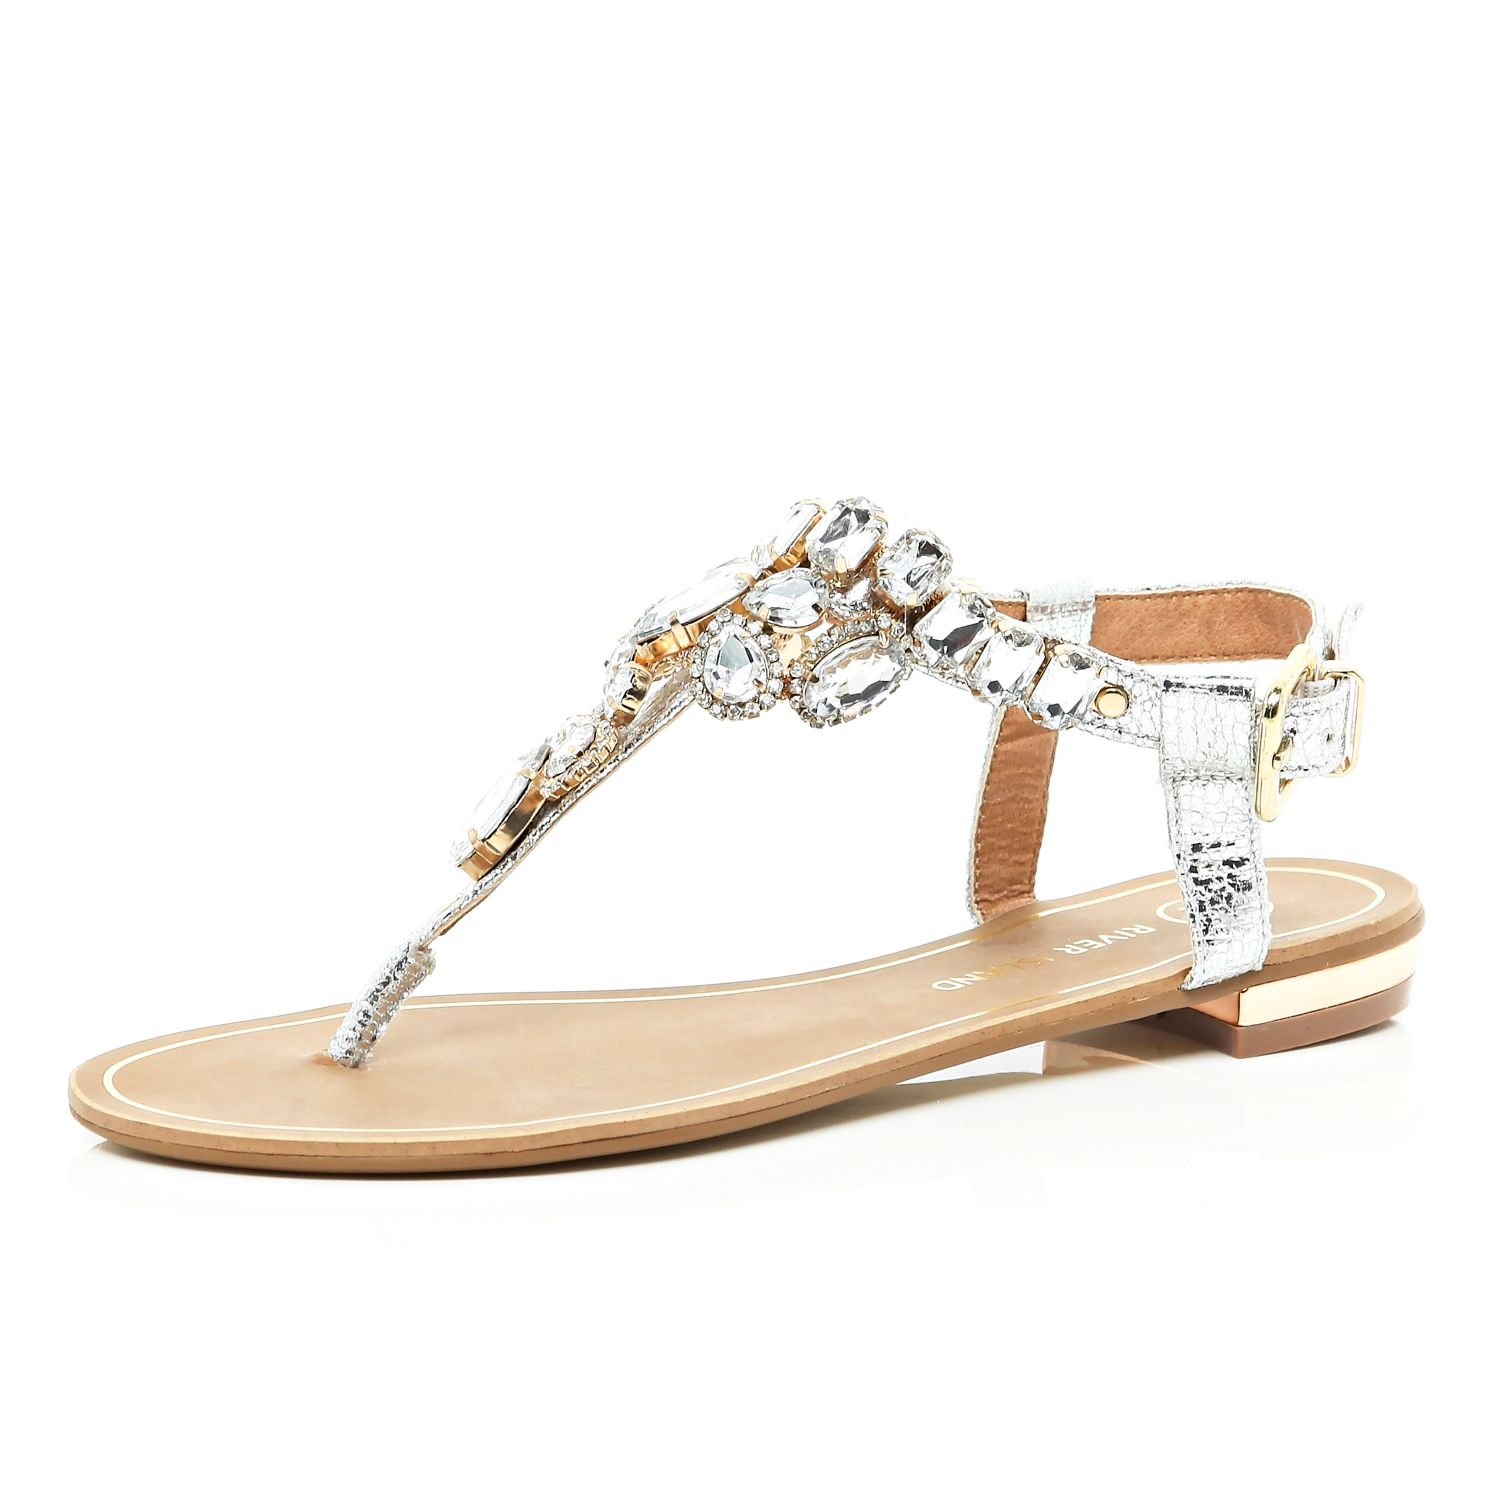 2545bc688d7 River Island Silver Gem Embellished T Bar Sandals in Metallic - Lyst